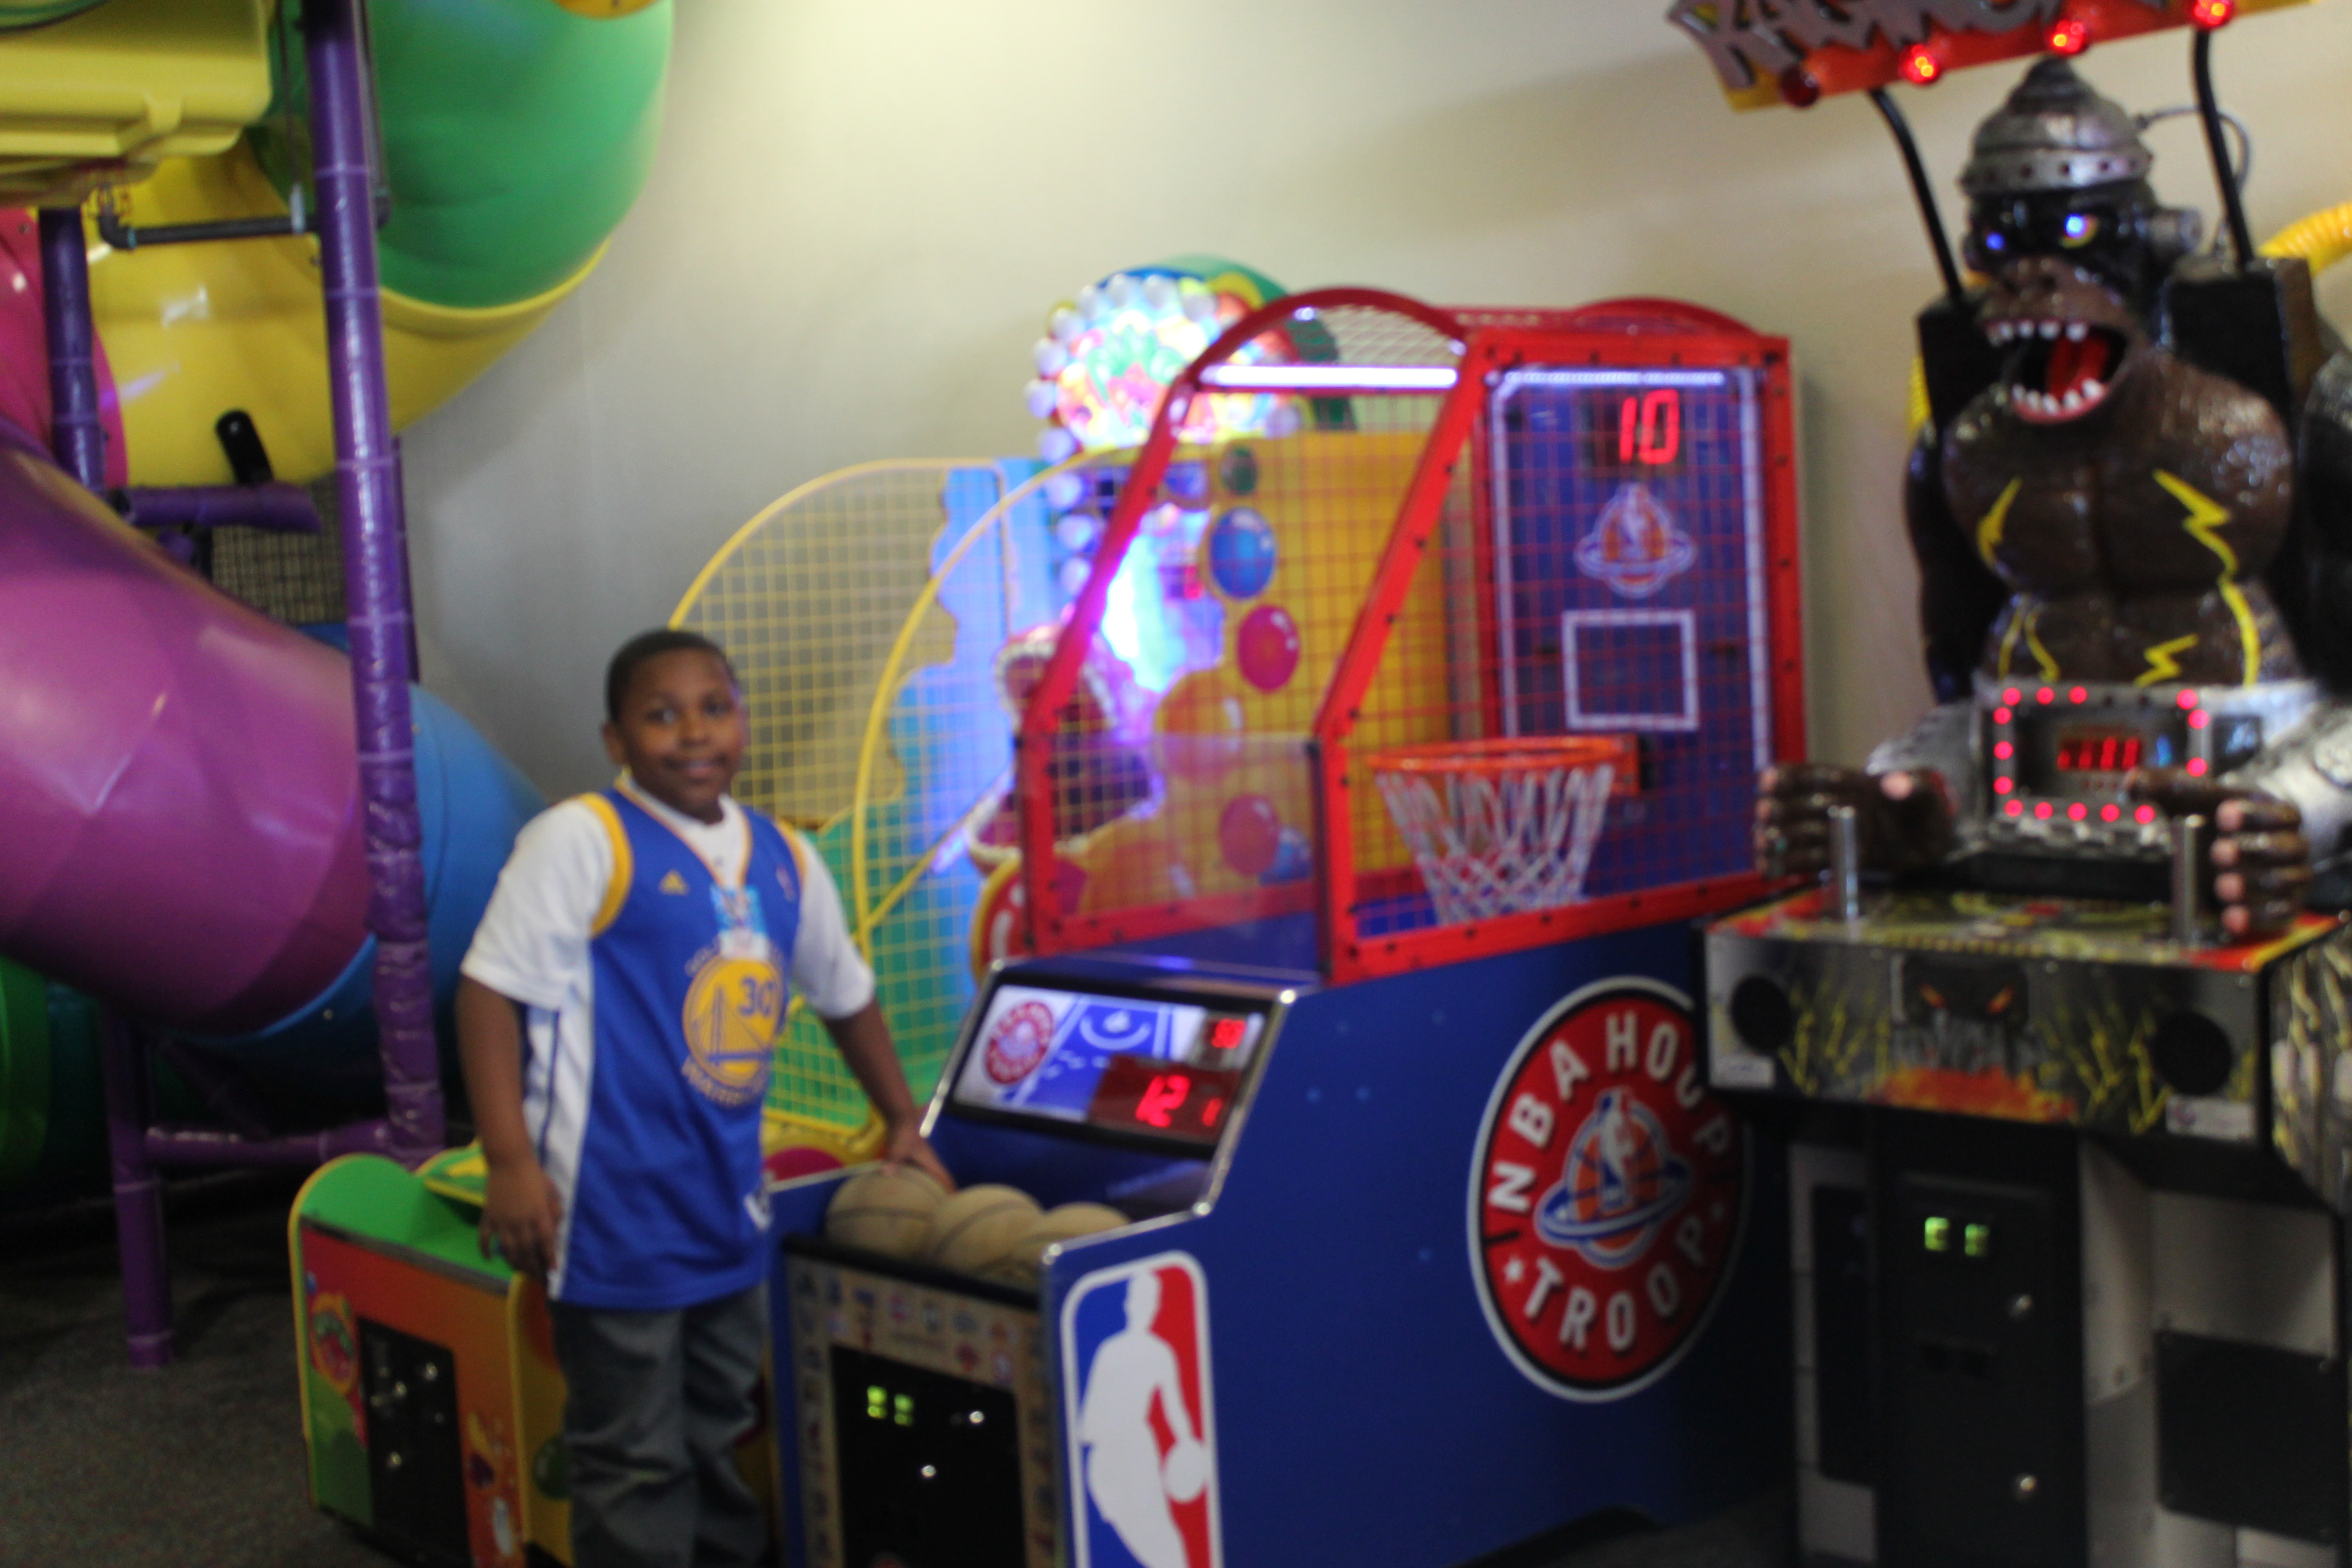 2015 Holiday Guide!! Fun at Chuck E. Cheese's during the Holidays!!